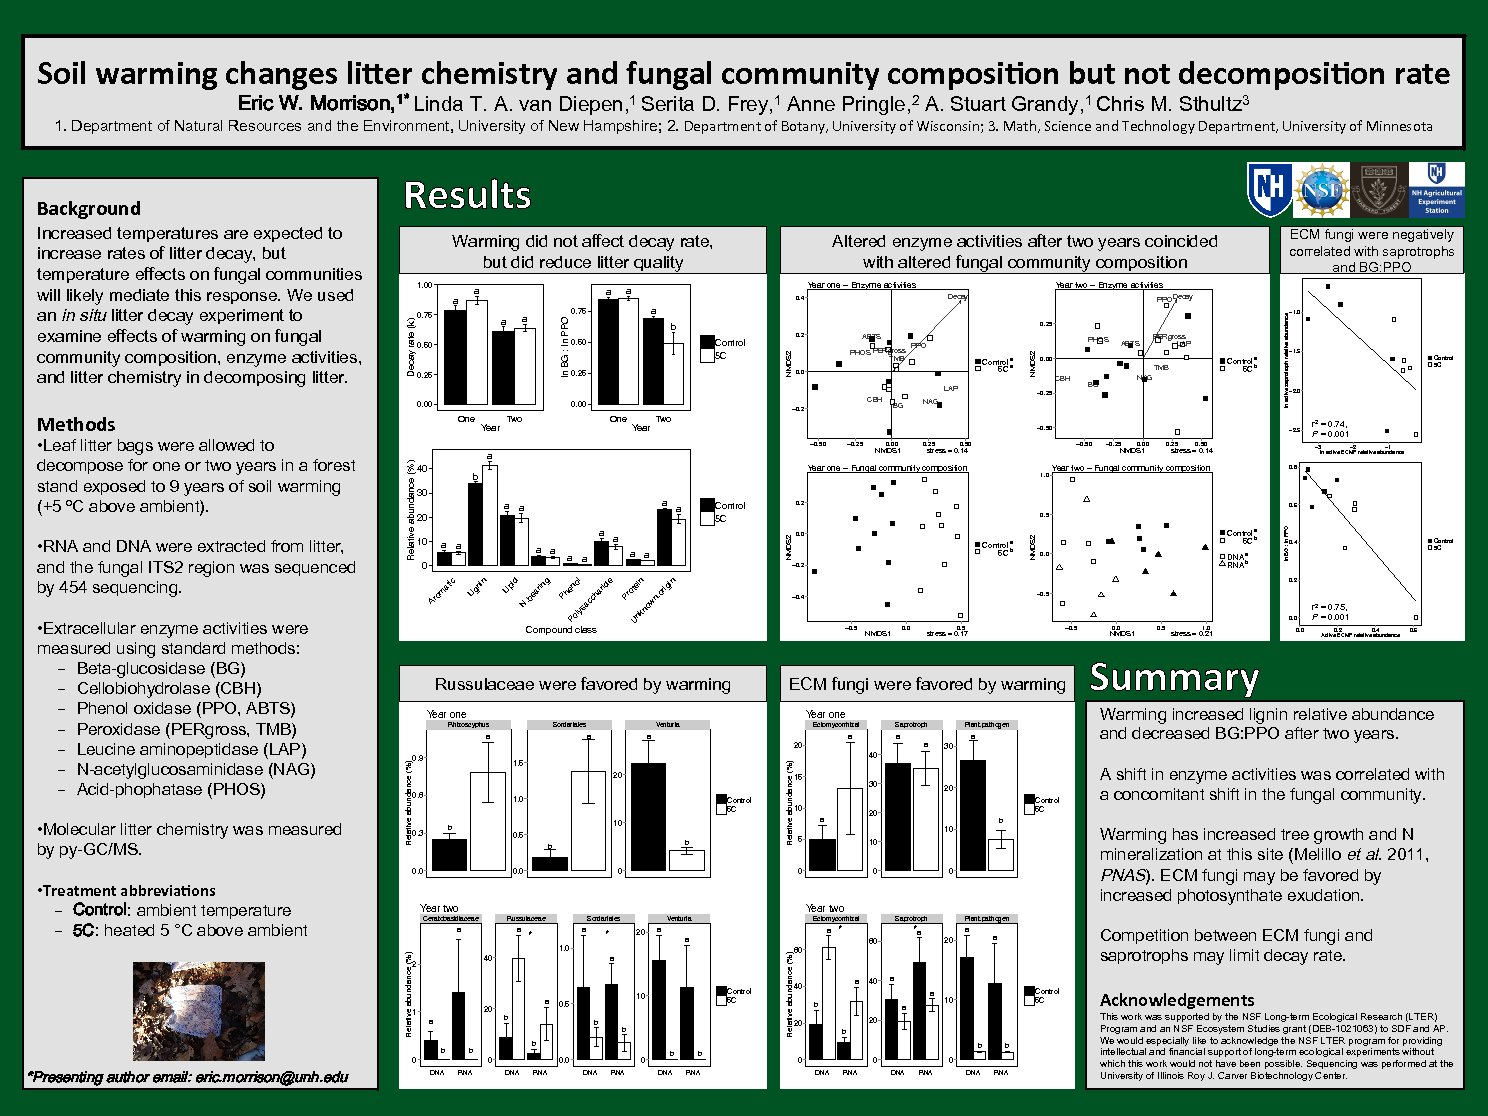 Soil Warming Changes Litter Chemistry And Fungal Community Composition But Not Decomposition Rate by ewj44